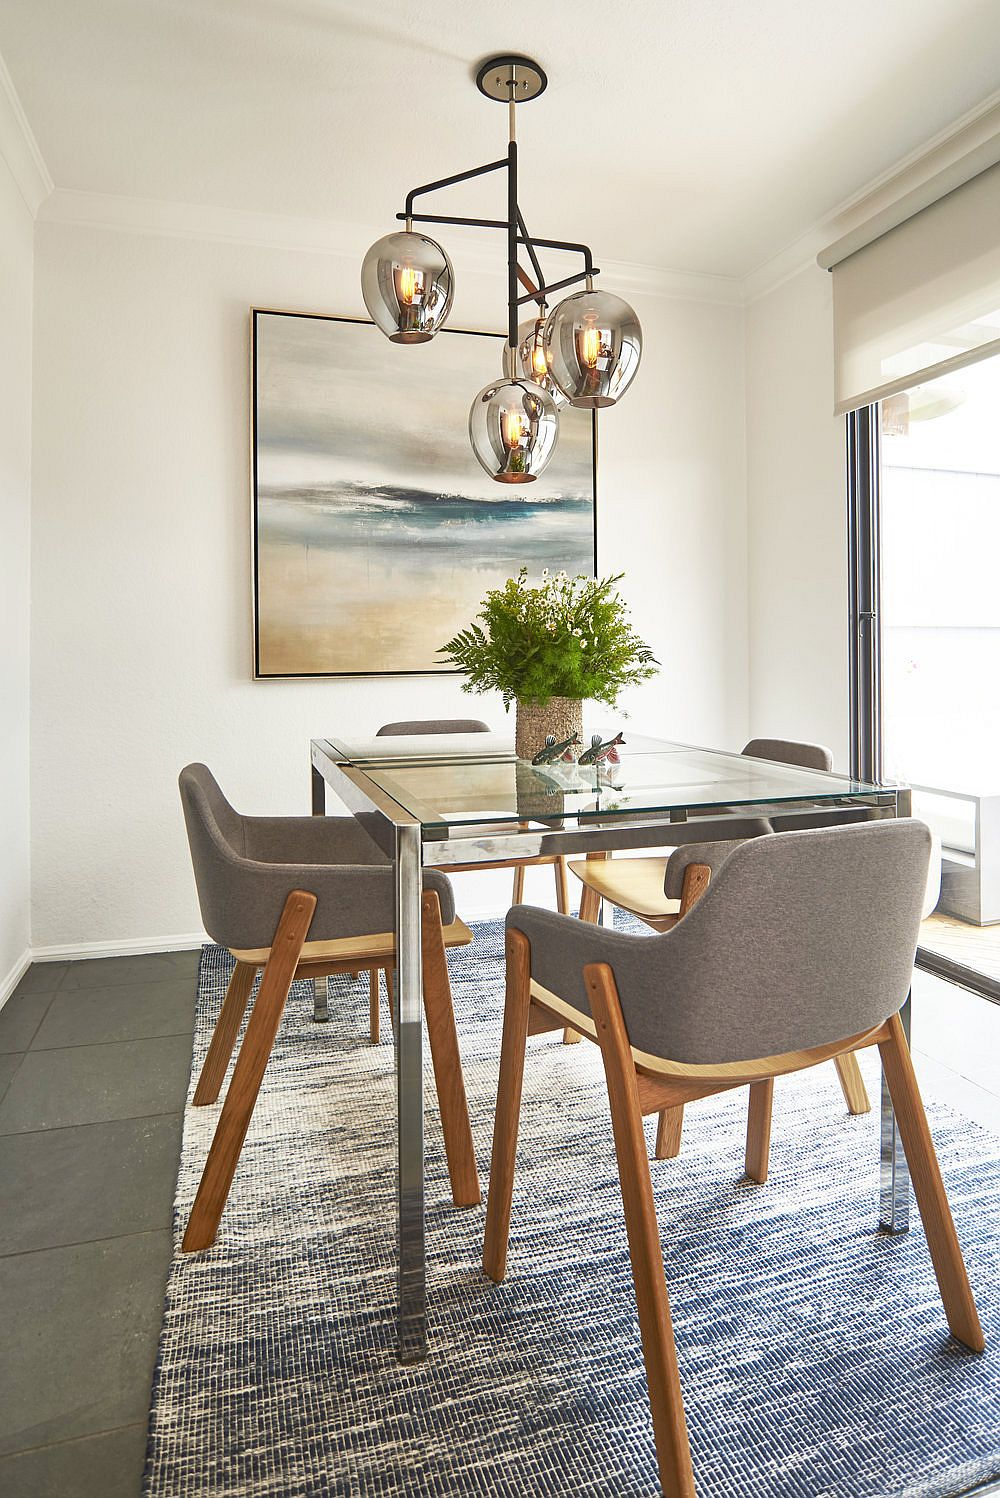 Gray chairs and metallic lighting fixture for the modern dining room